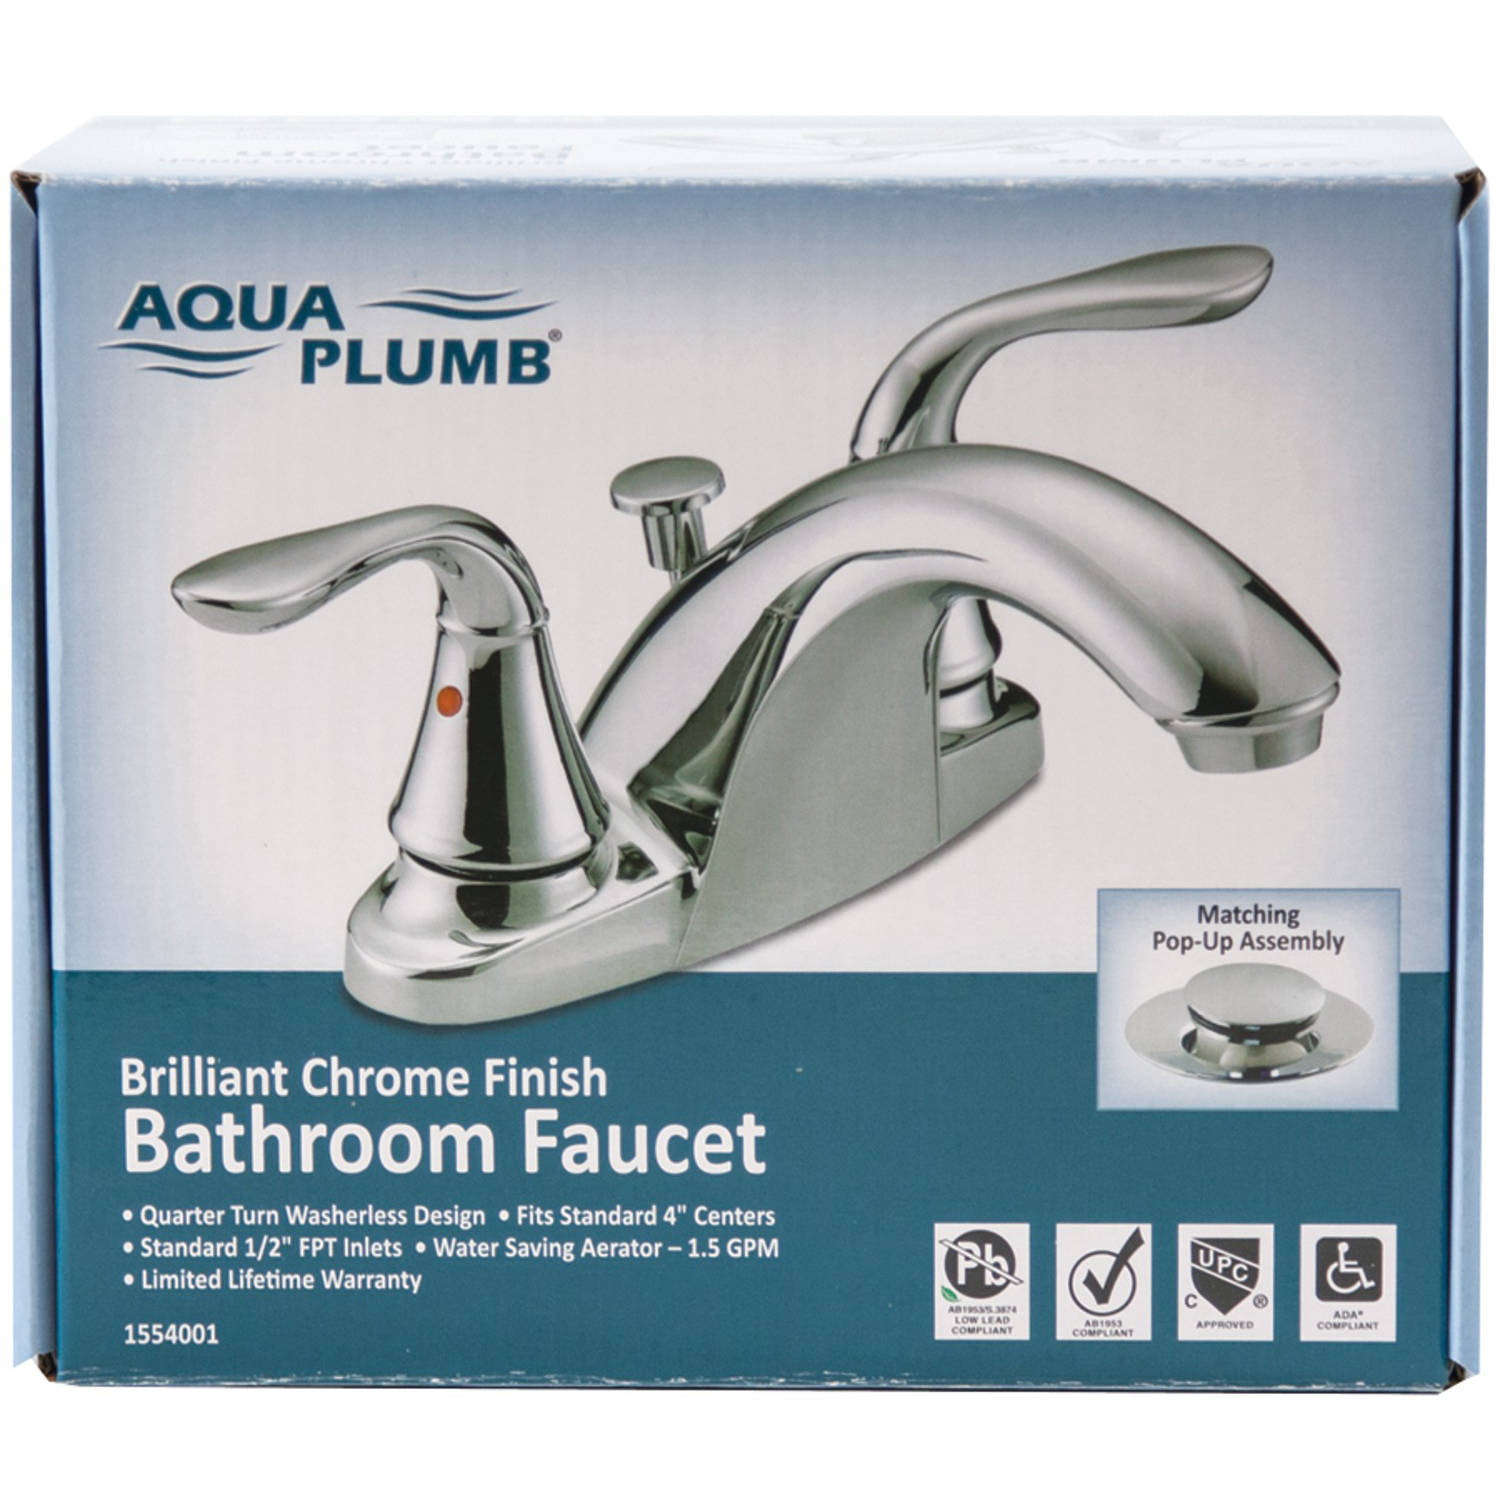 Superbe Aqua Plumb 1554001 Premium Chrome Plated 2 Handle Bathroom Faucet    Walmart.com